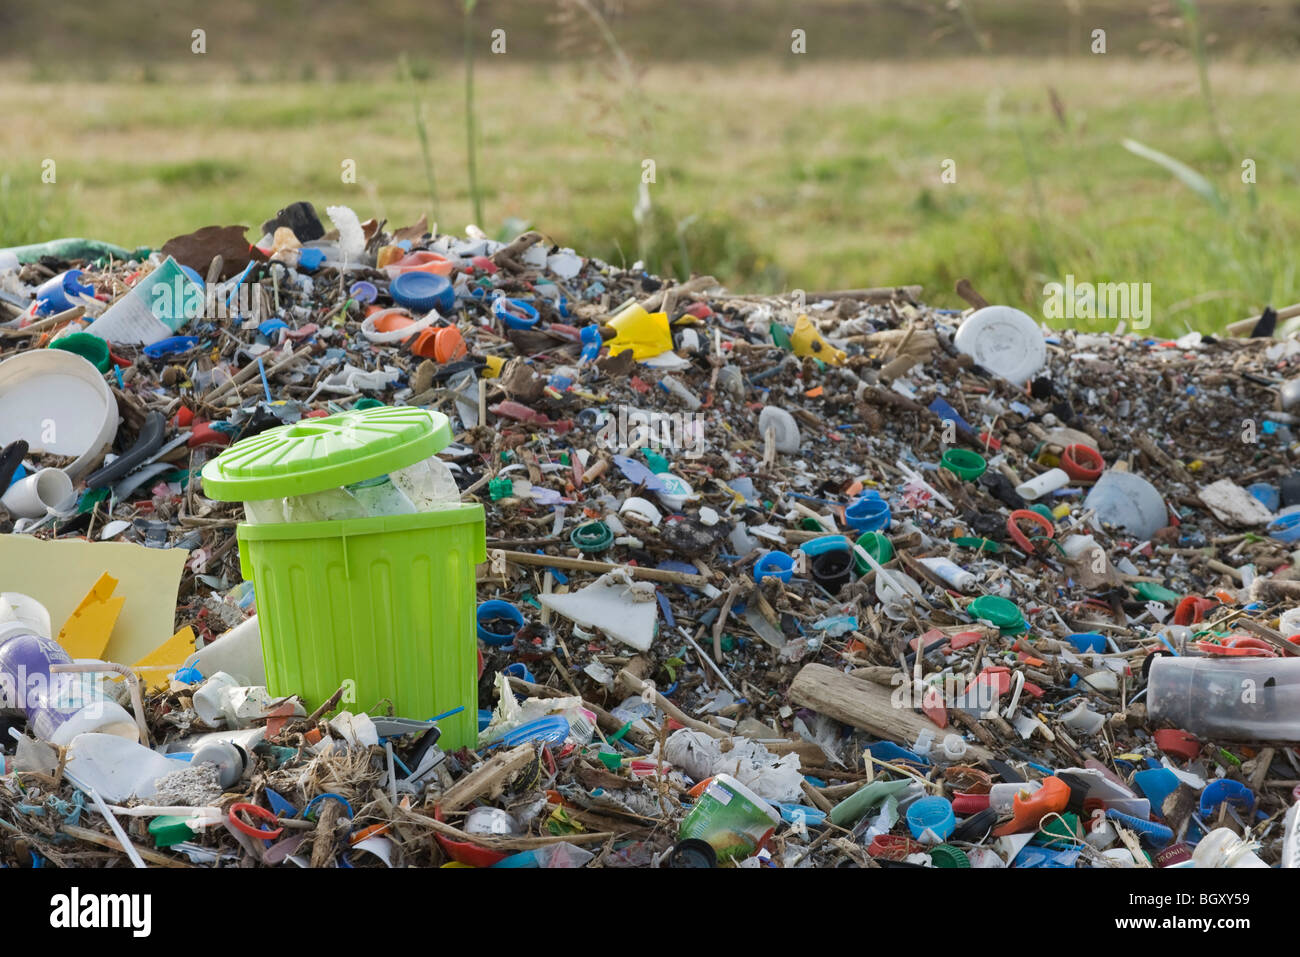 Full garbage can in midst of landfill - Stock Image